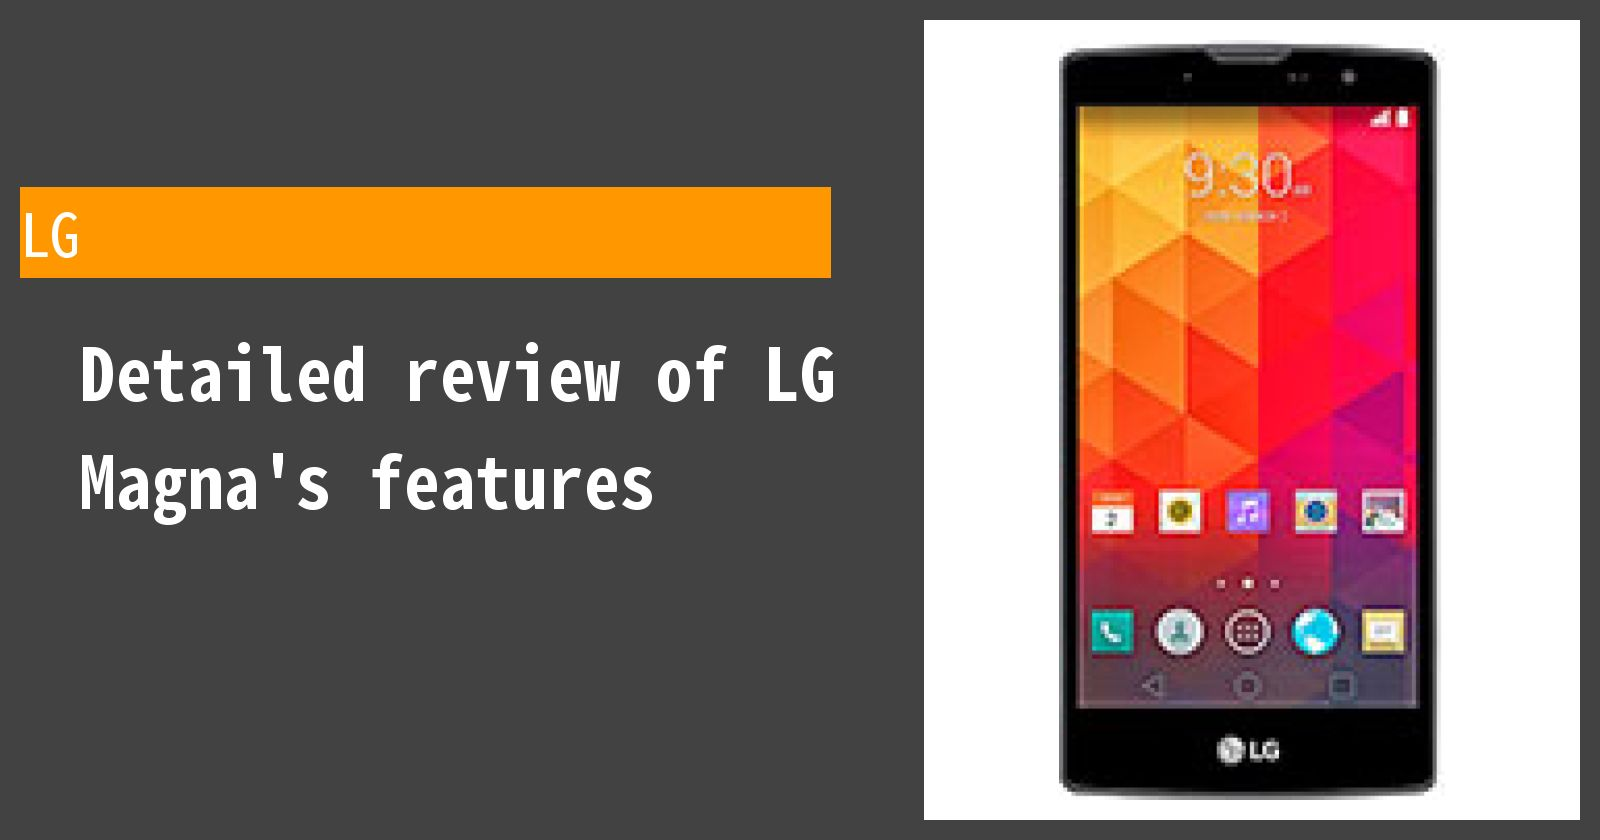 Detailed review of LG Magna's features